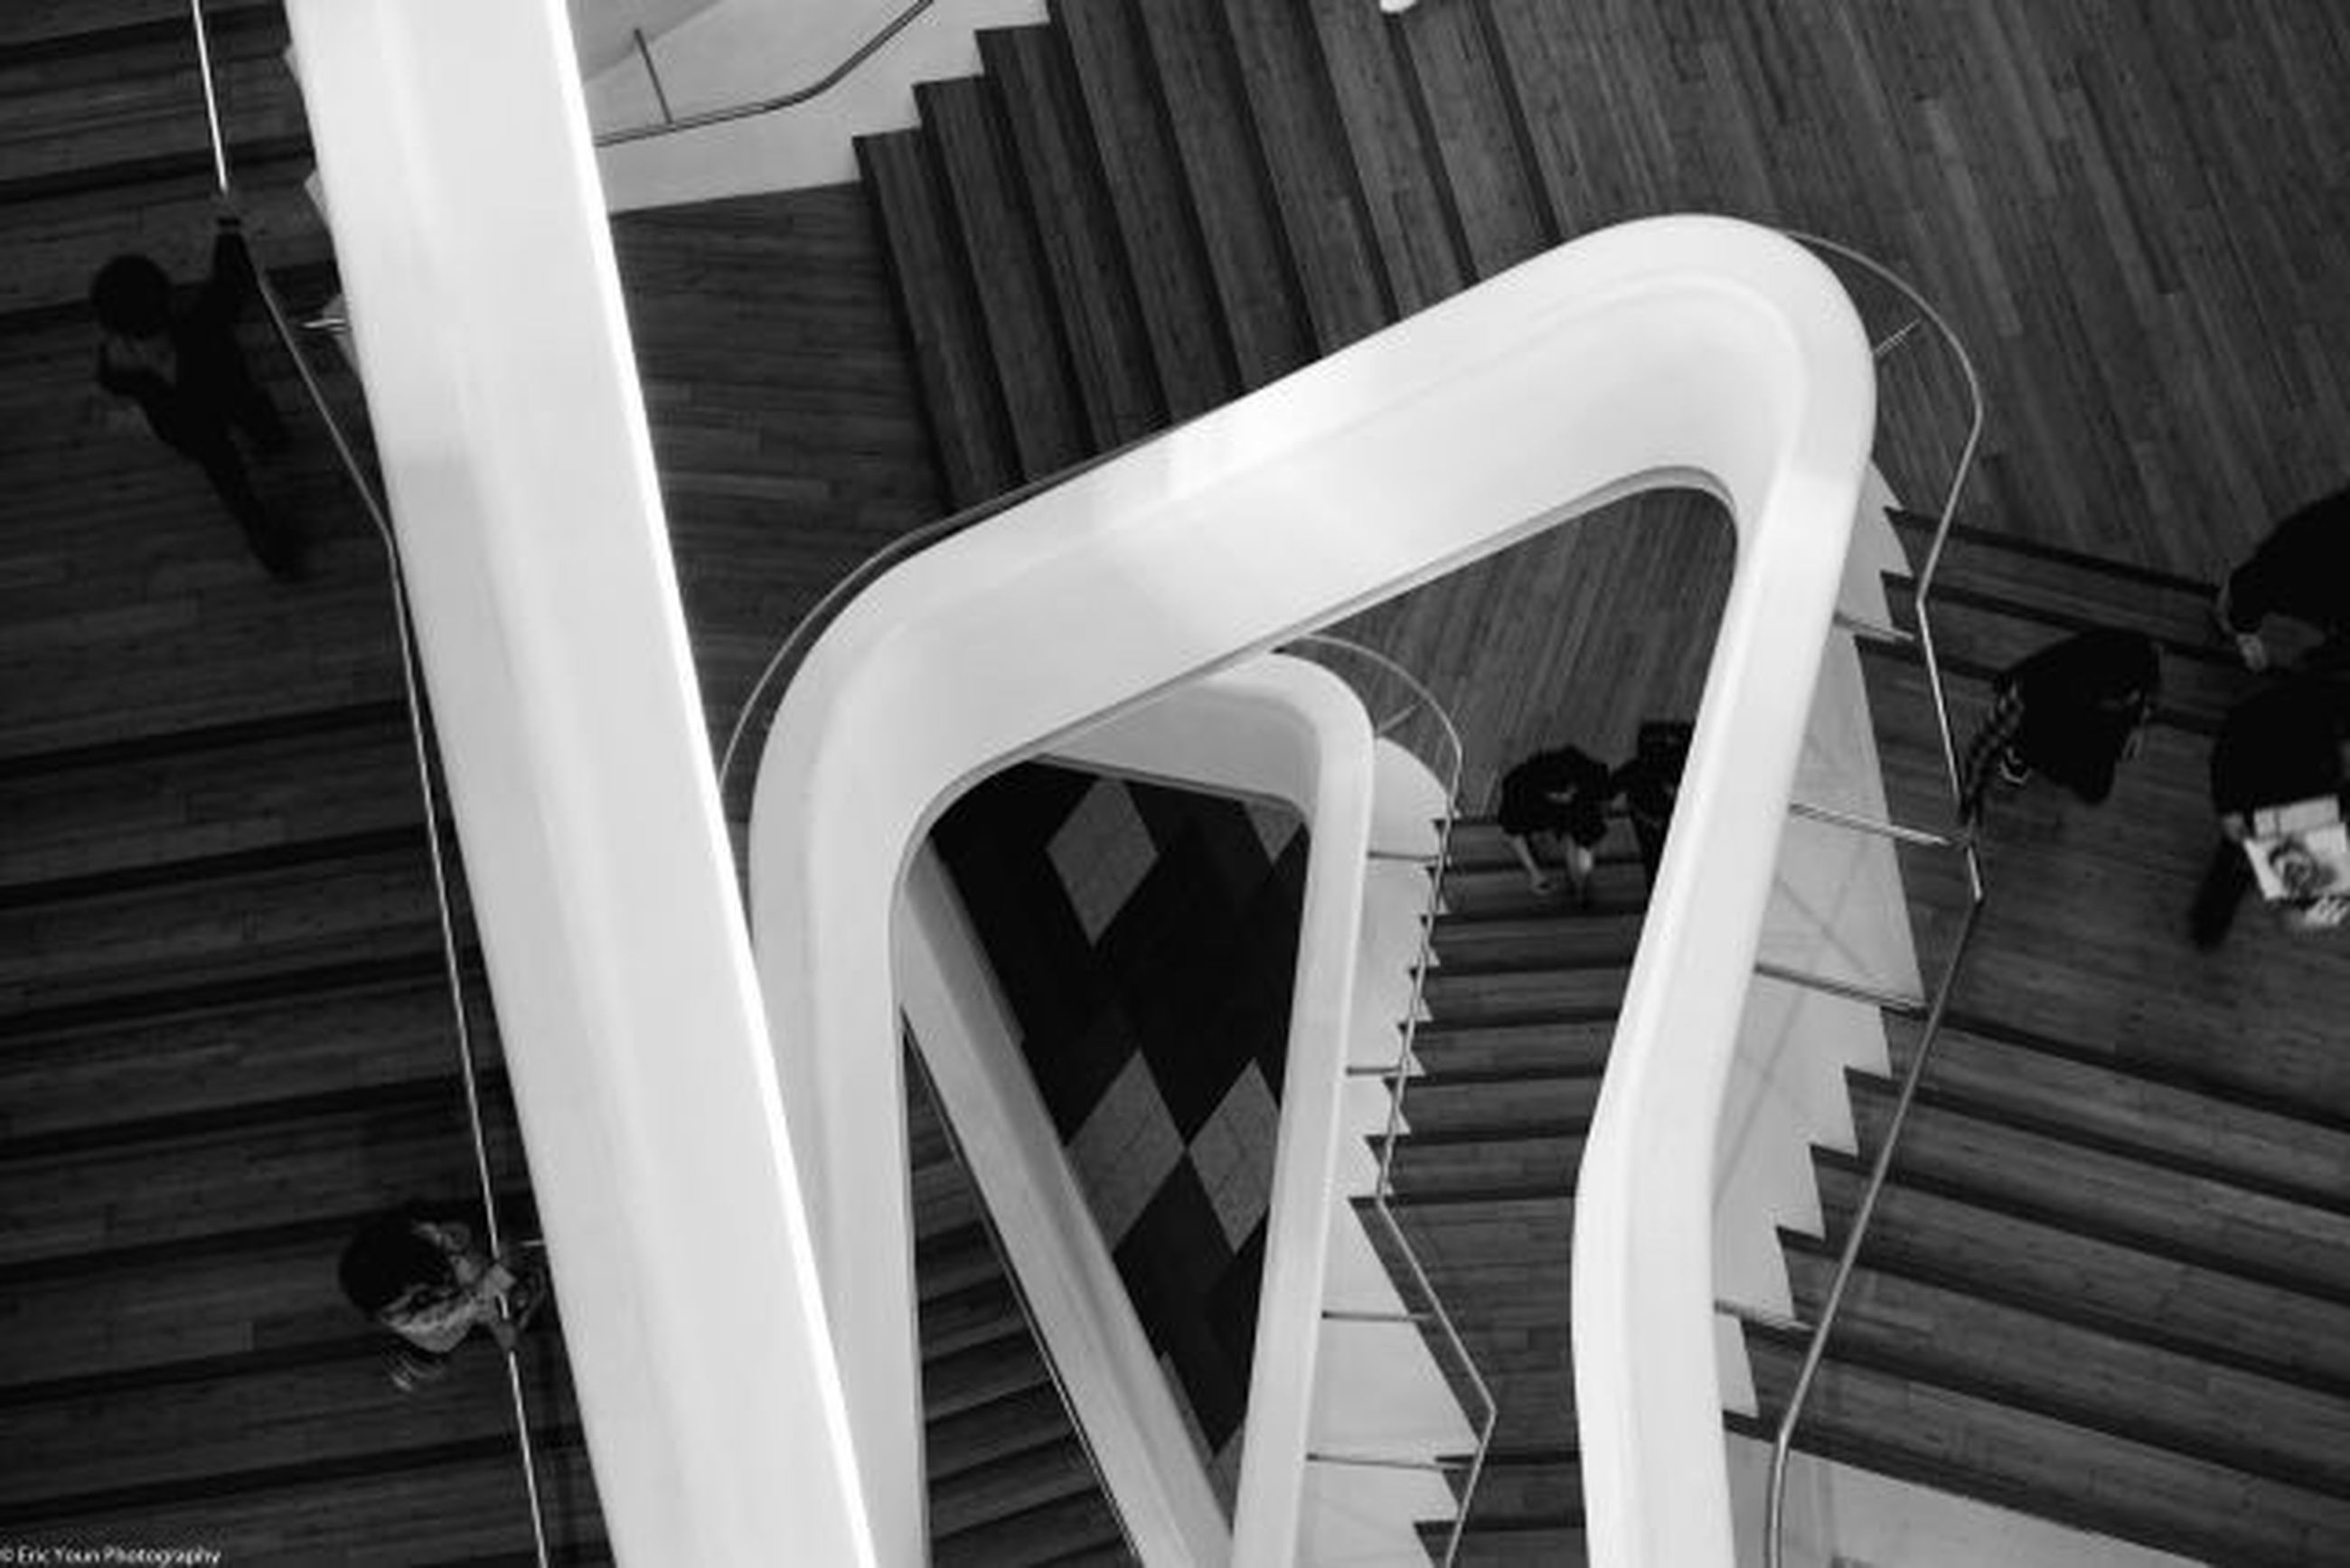 steps, steps and staircases, railing, staircase, wood - material, indoors, built structure, high angle view, architecture, wood, stairs, wooden, day, no people, escalator, sunlight, spiral, metal, building exterior